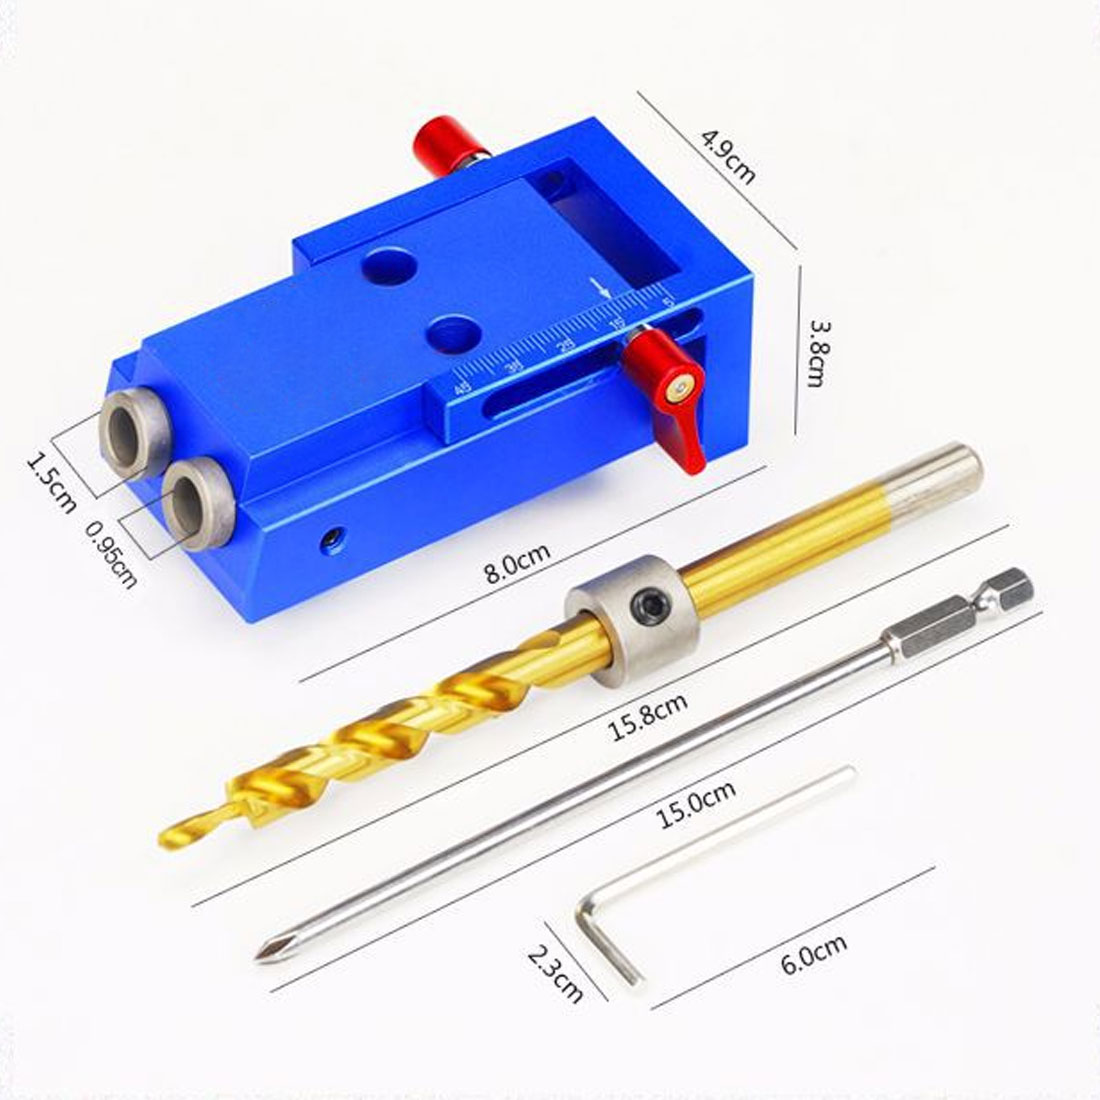 Woodworking Pocket Hole Jig Kit 6/8/10mm Angle Drill Guide Set Hole Puncher Locator Jig Drill Bit Set For DIY Carpentry Tools favourite бра picturion